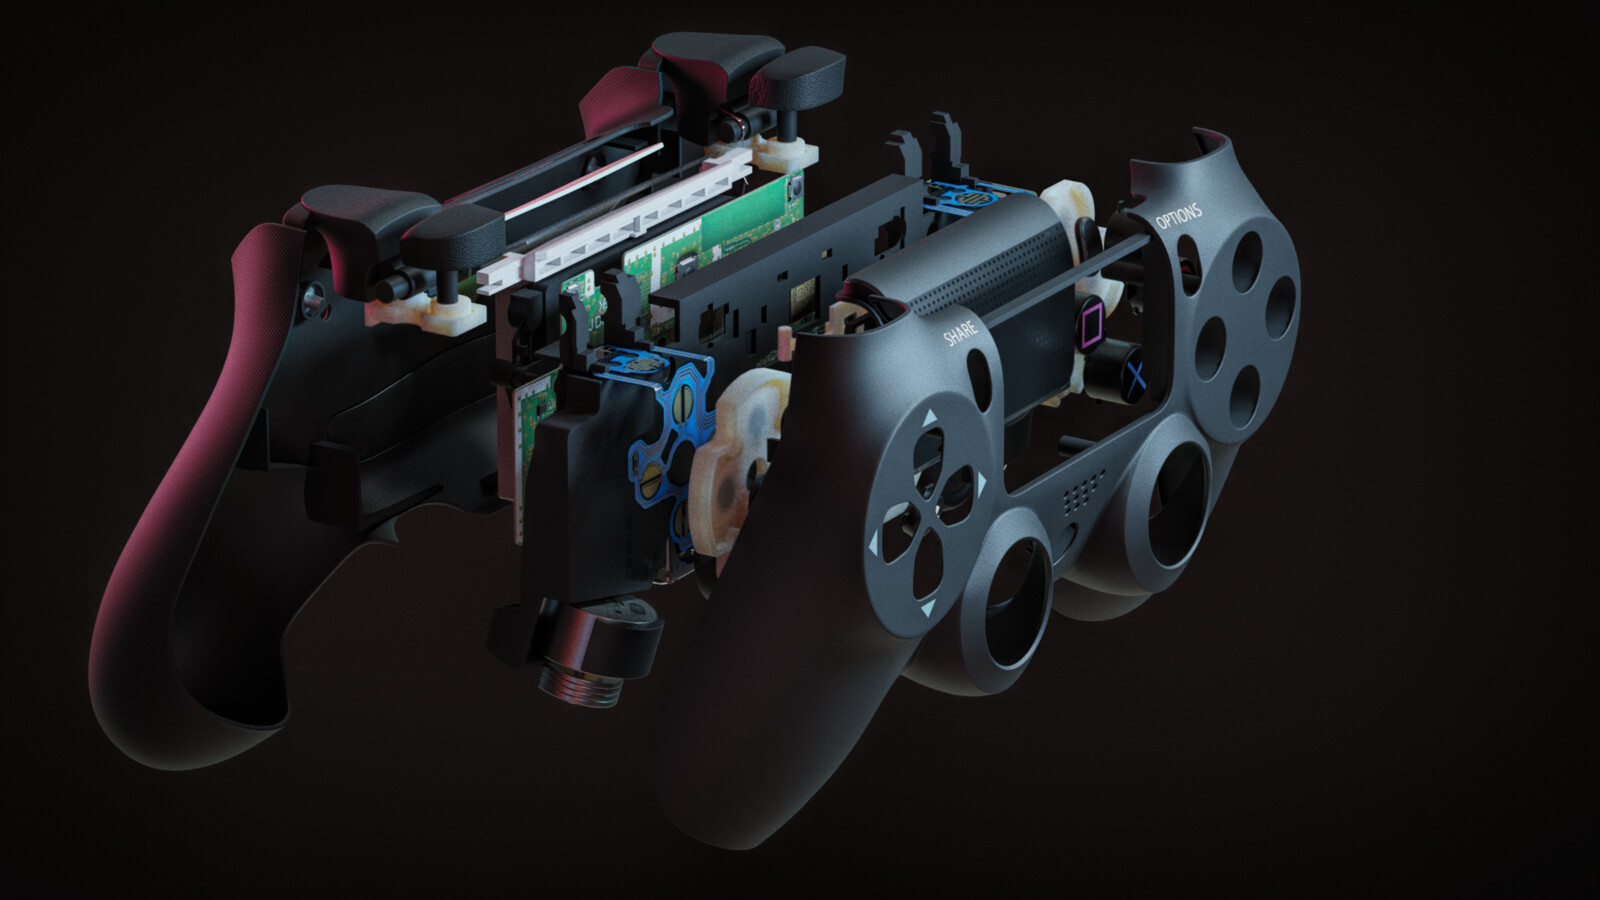 PS4 Controller Assembly